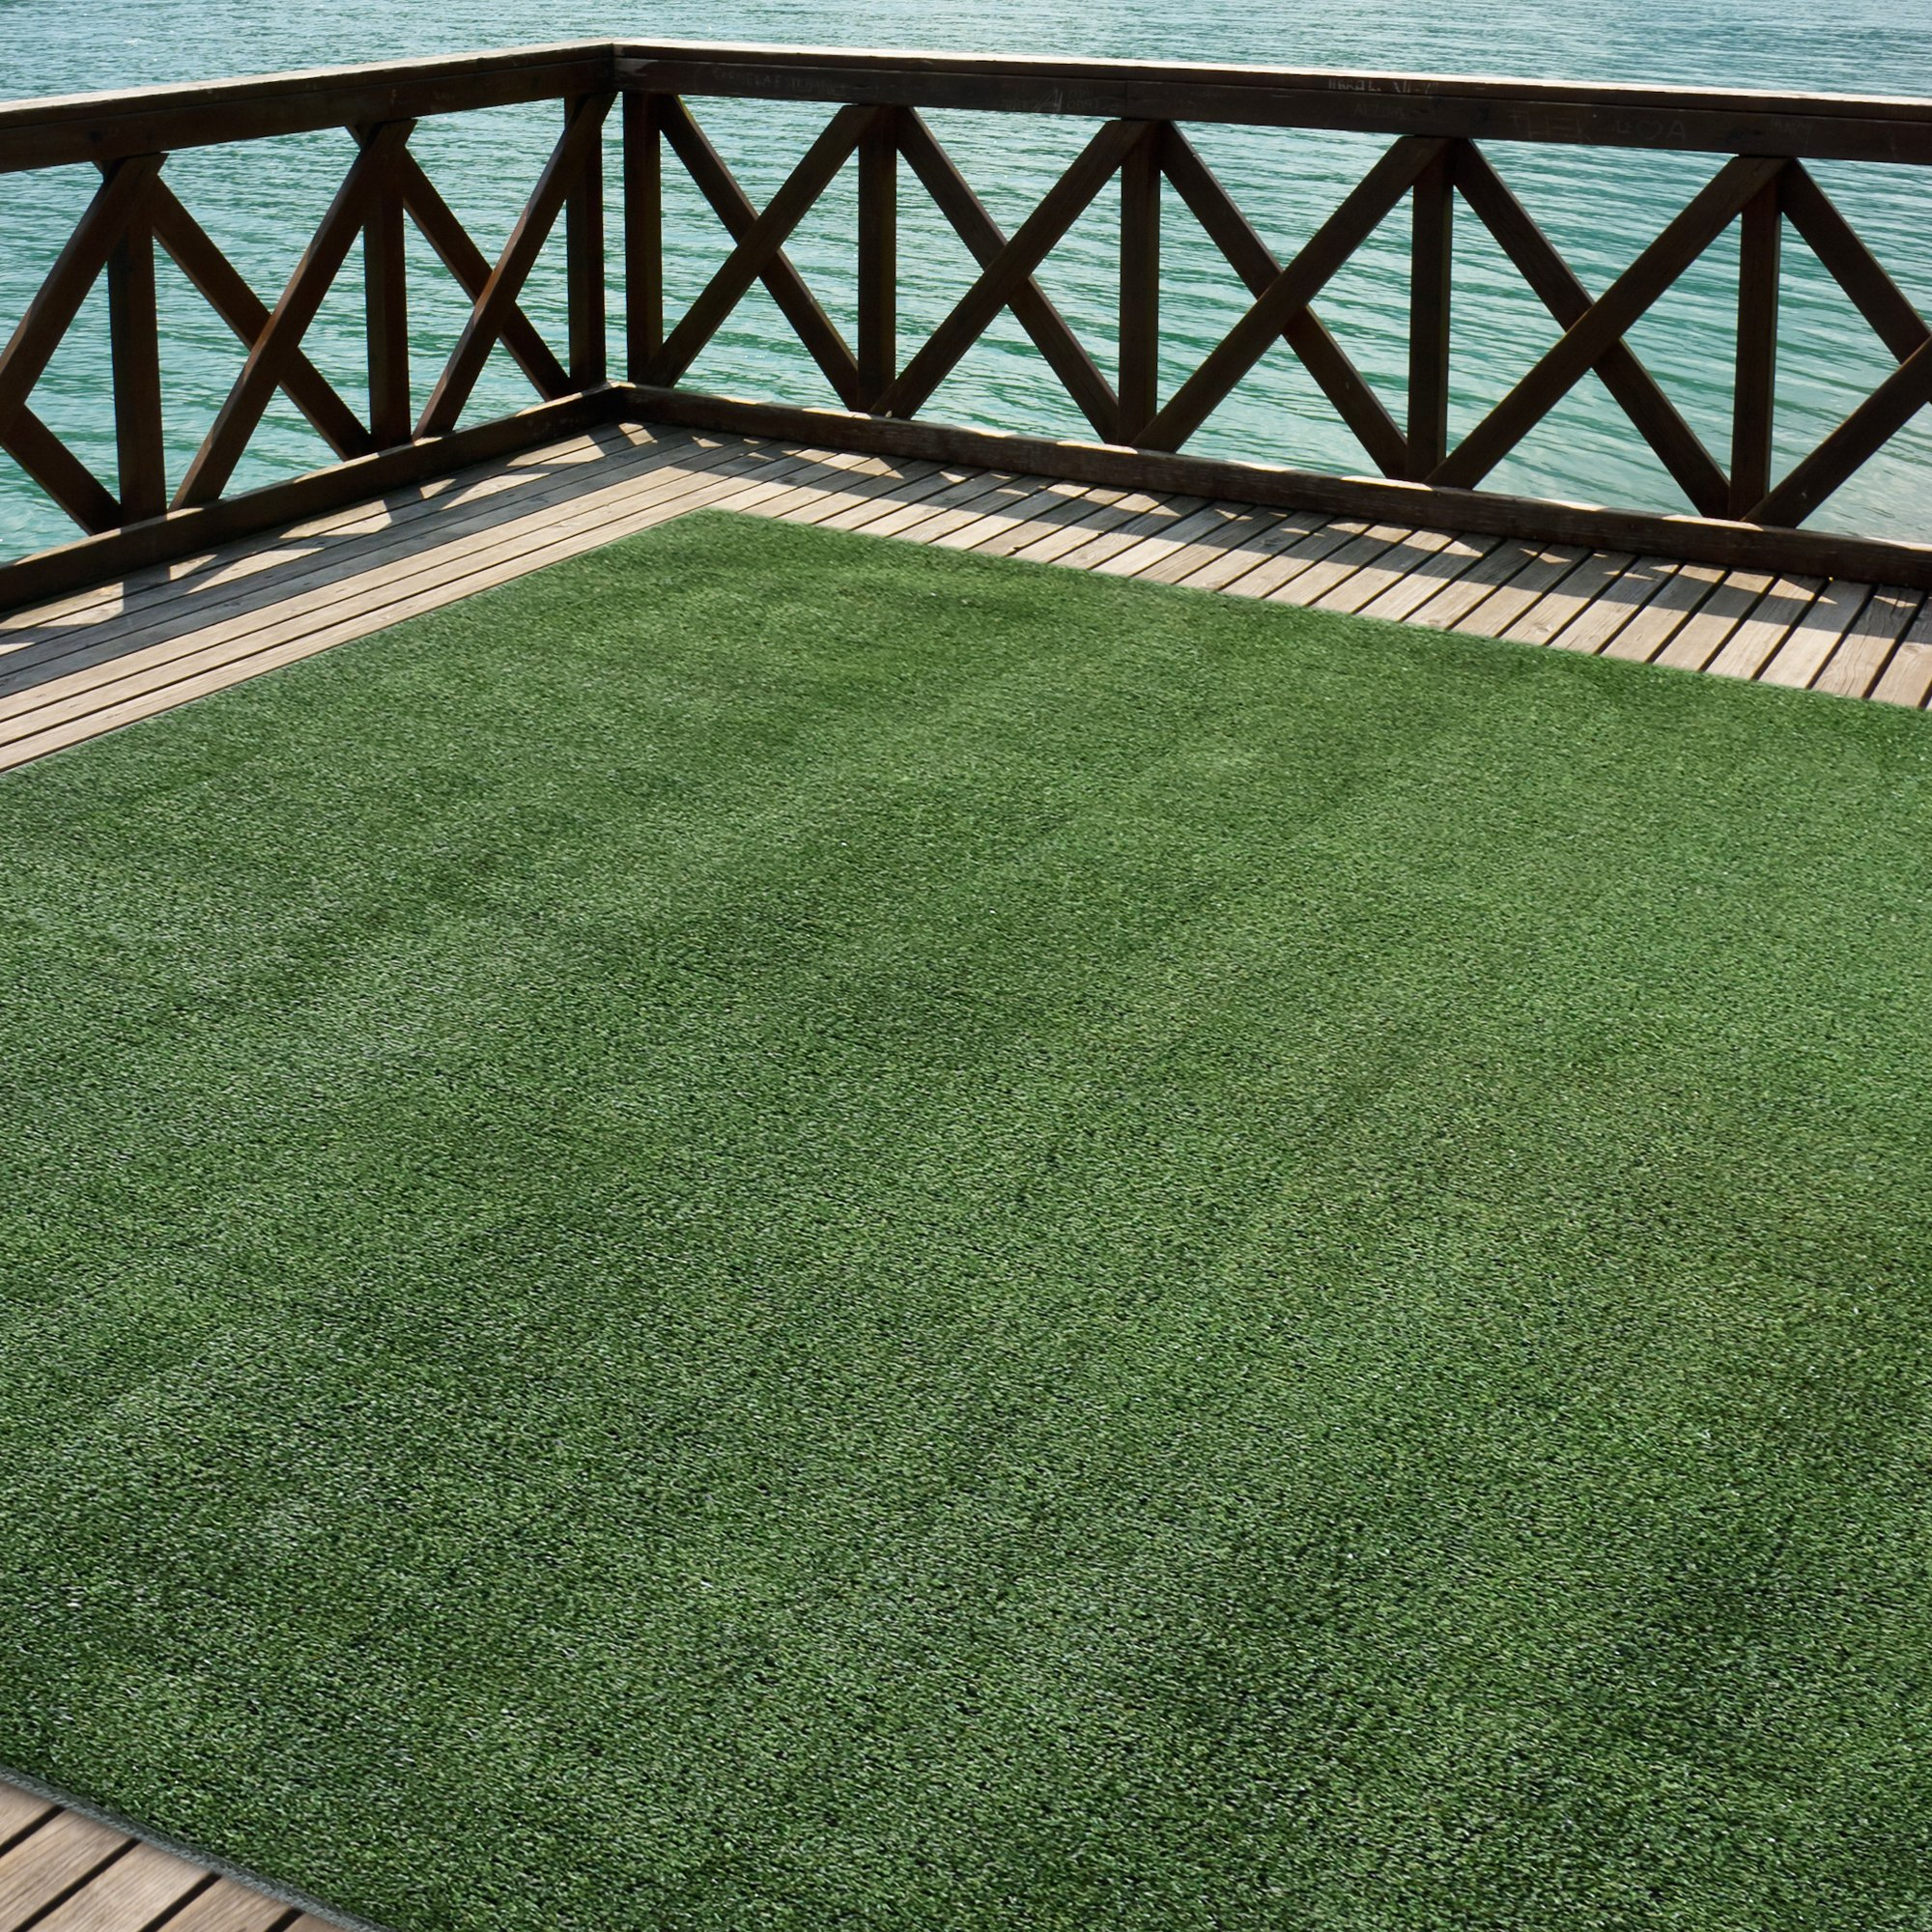 Cheap Green Turf Rug Find Green Turf Rug Deals On Line At